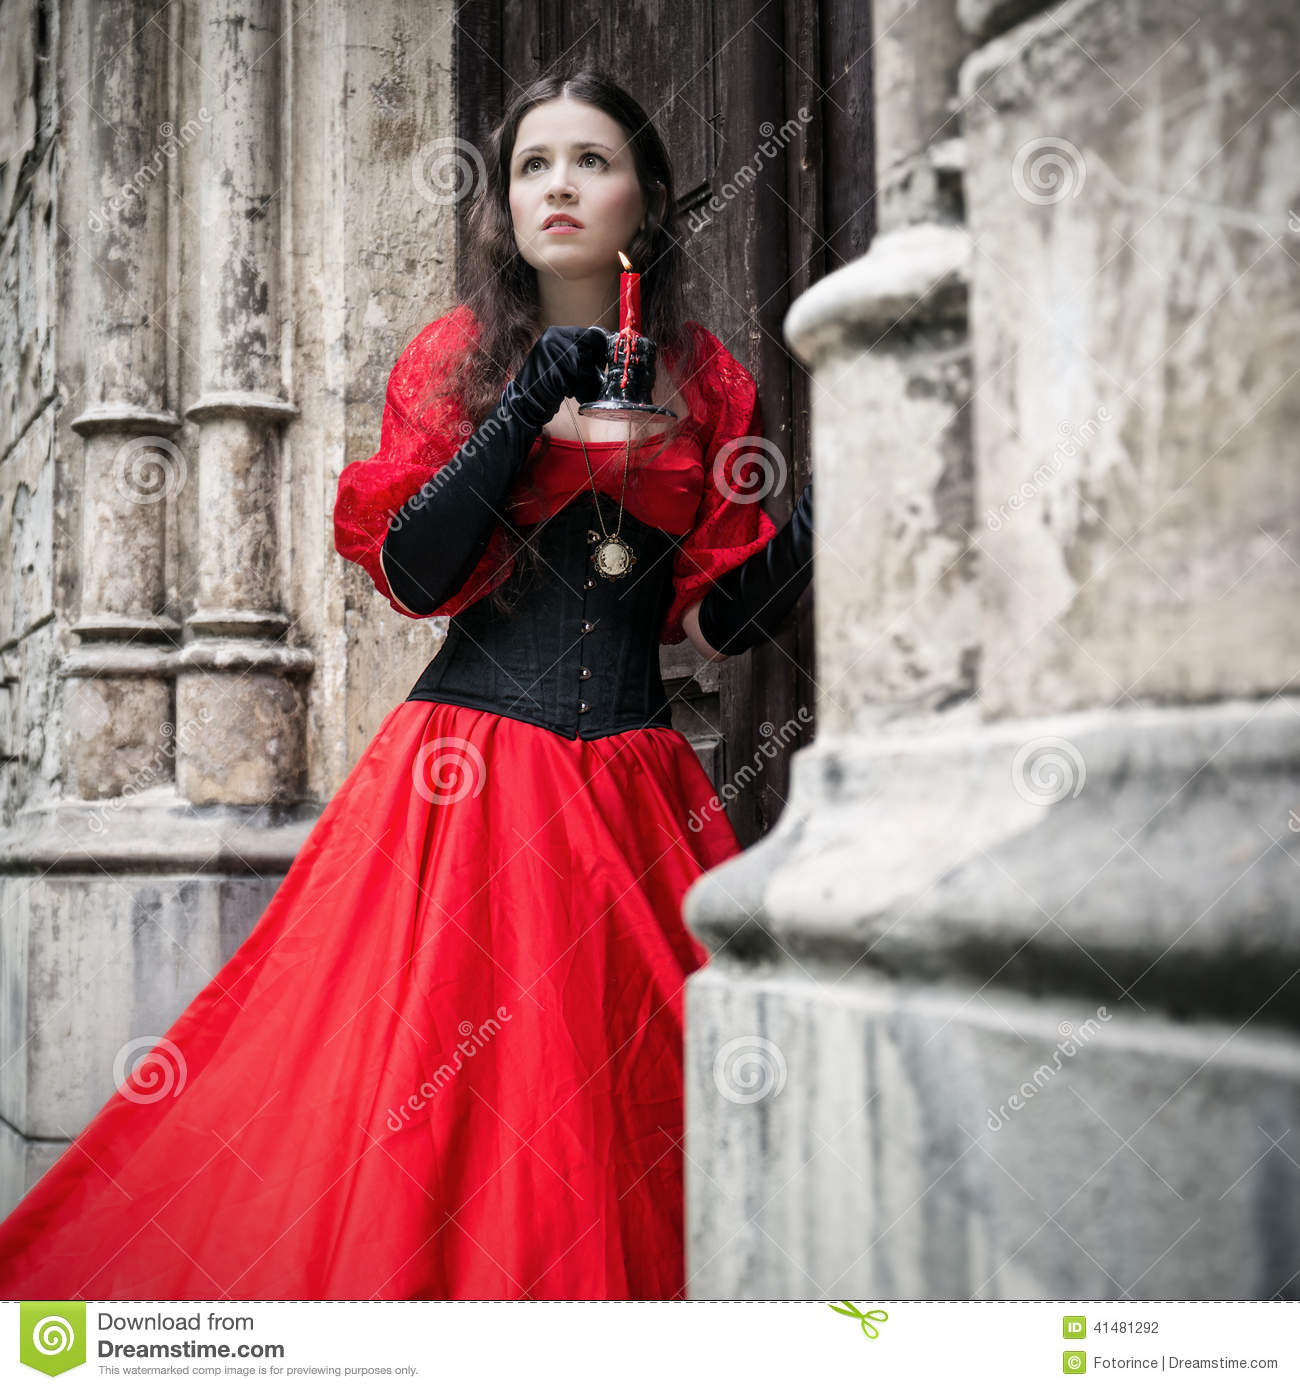 b4b8a107045 Mysterious Woman In Red Victorian Dress Stock Photo - Image of ...